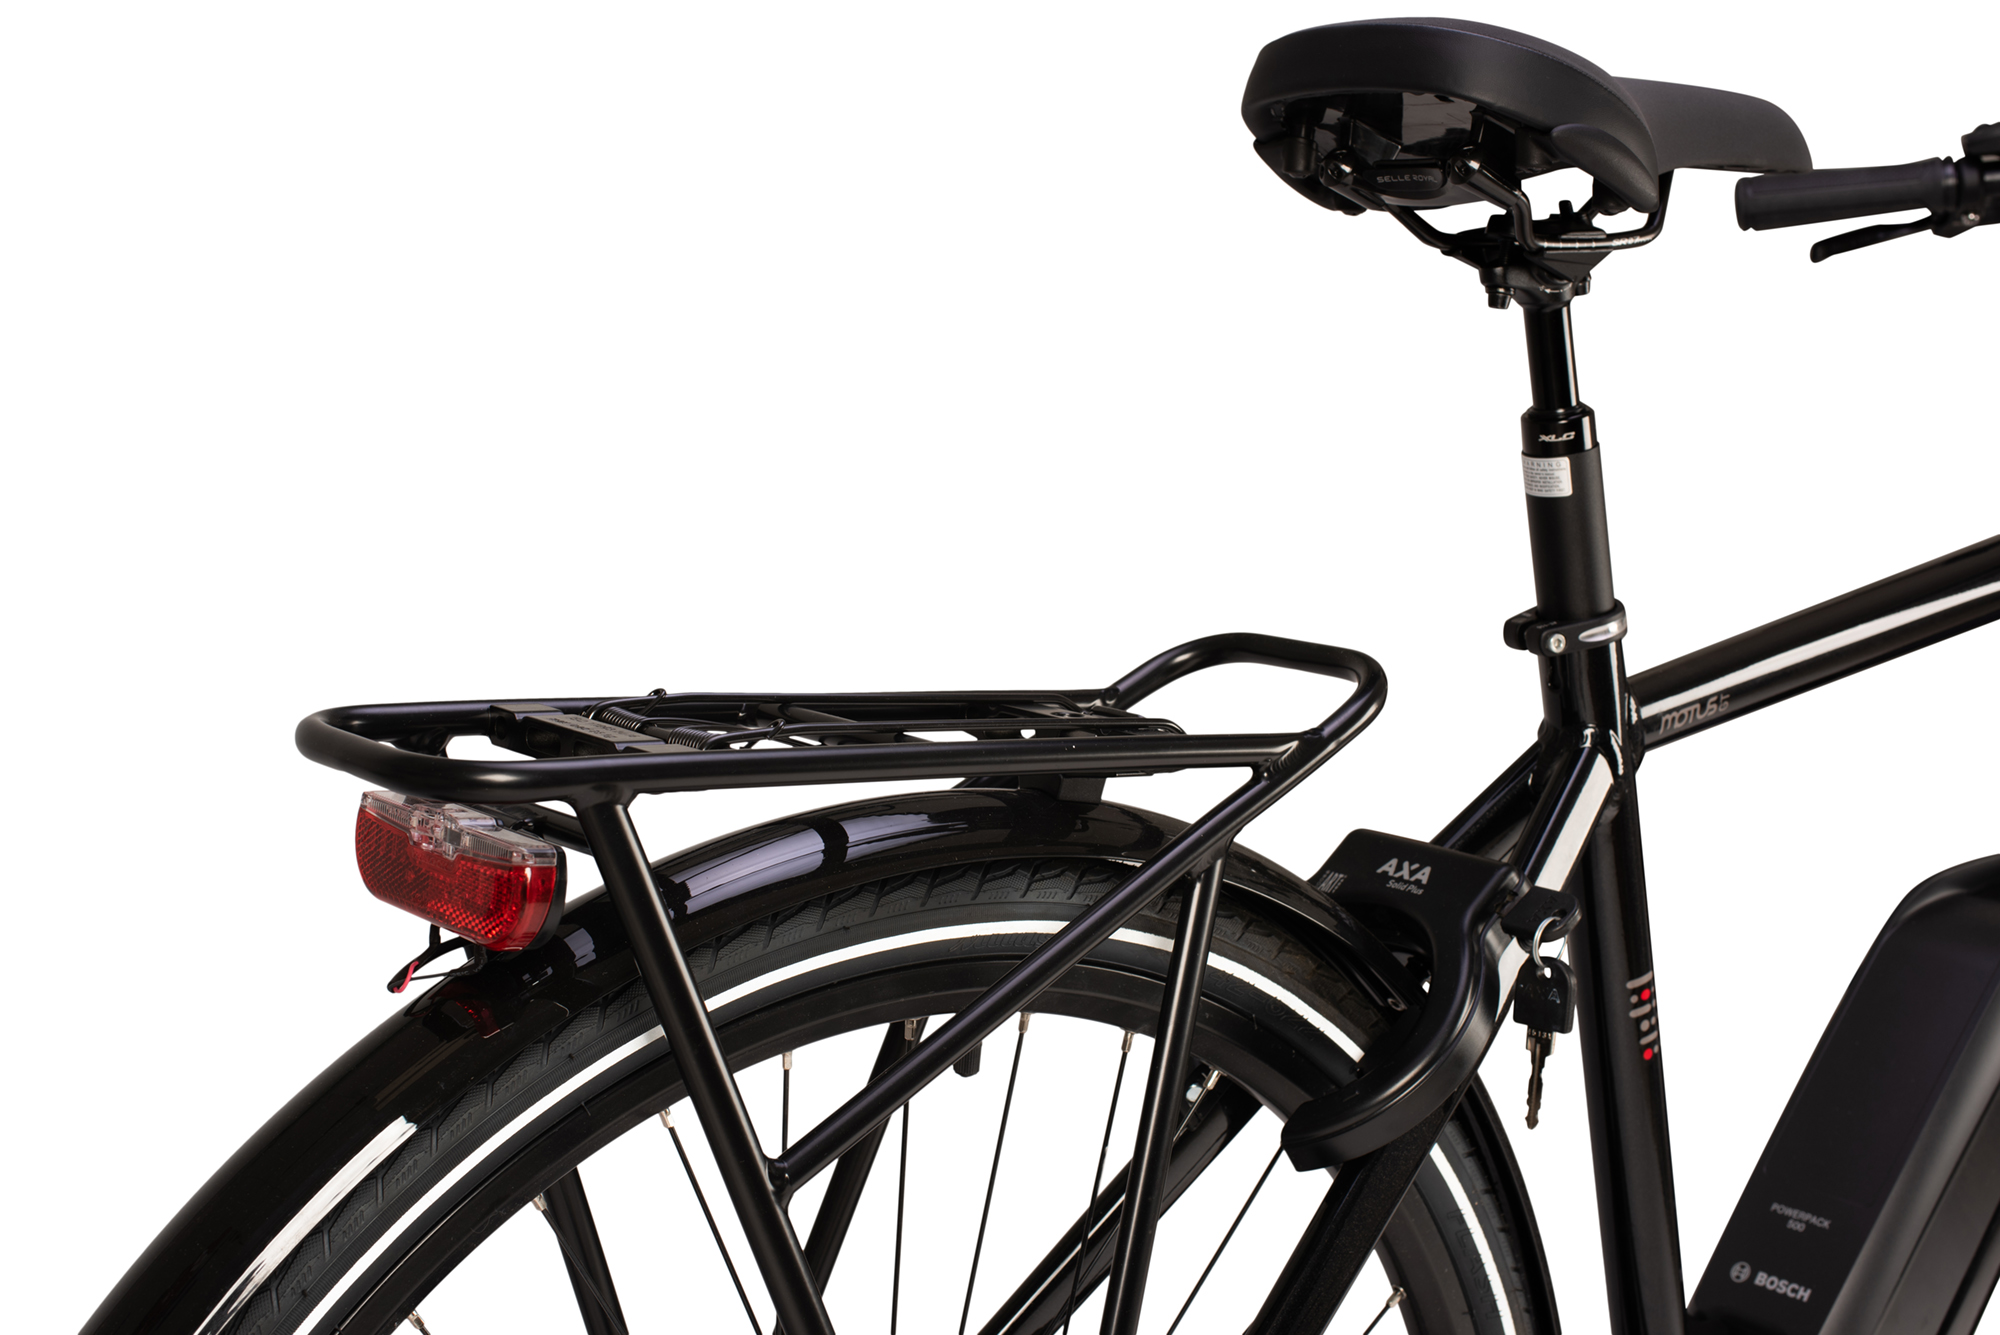 Rear luggage rack on the Raleigh Motus Grand Tour electric bike